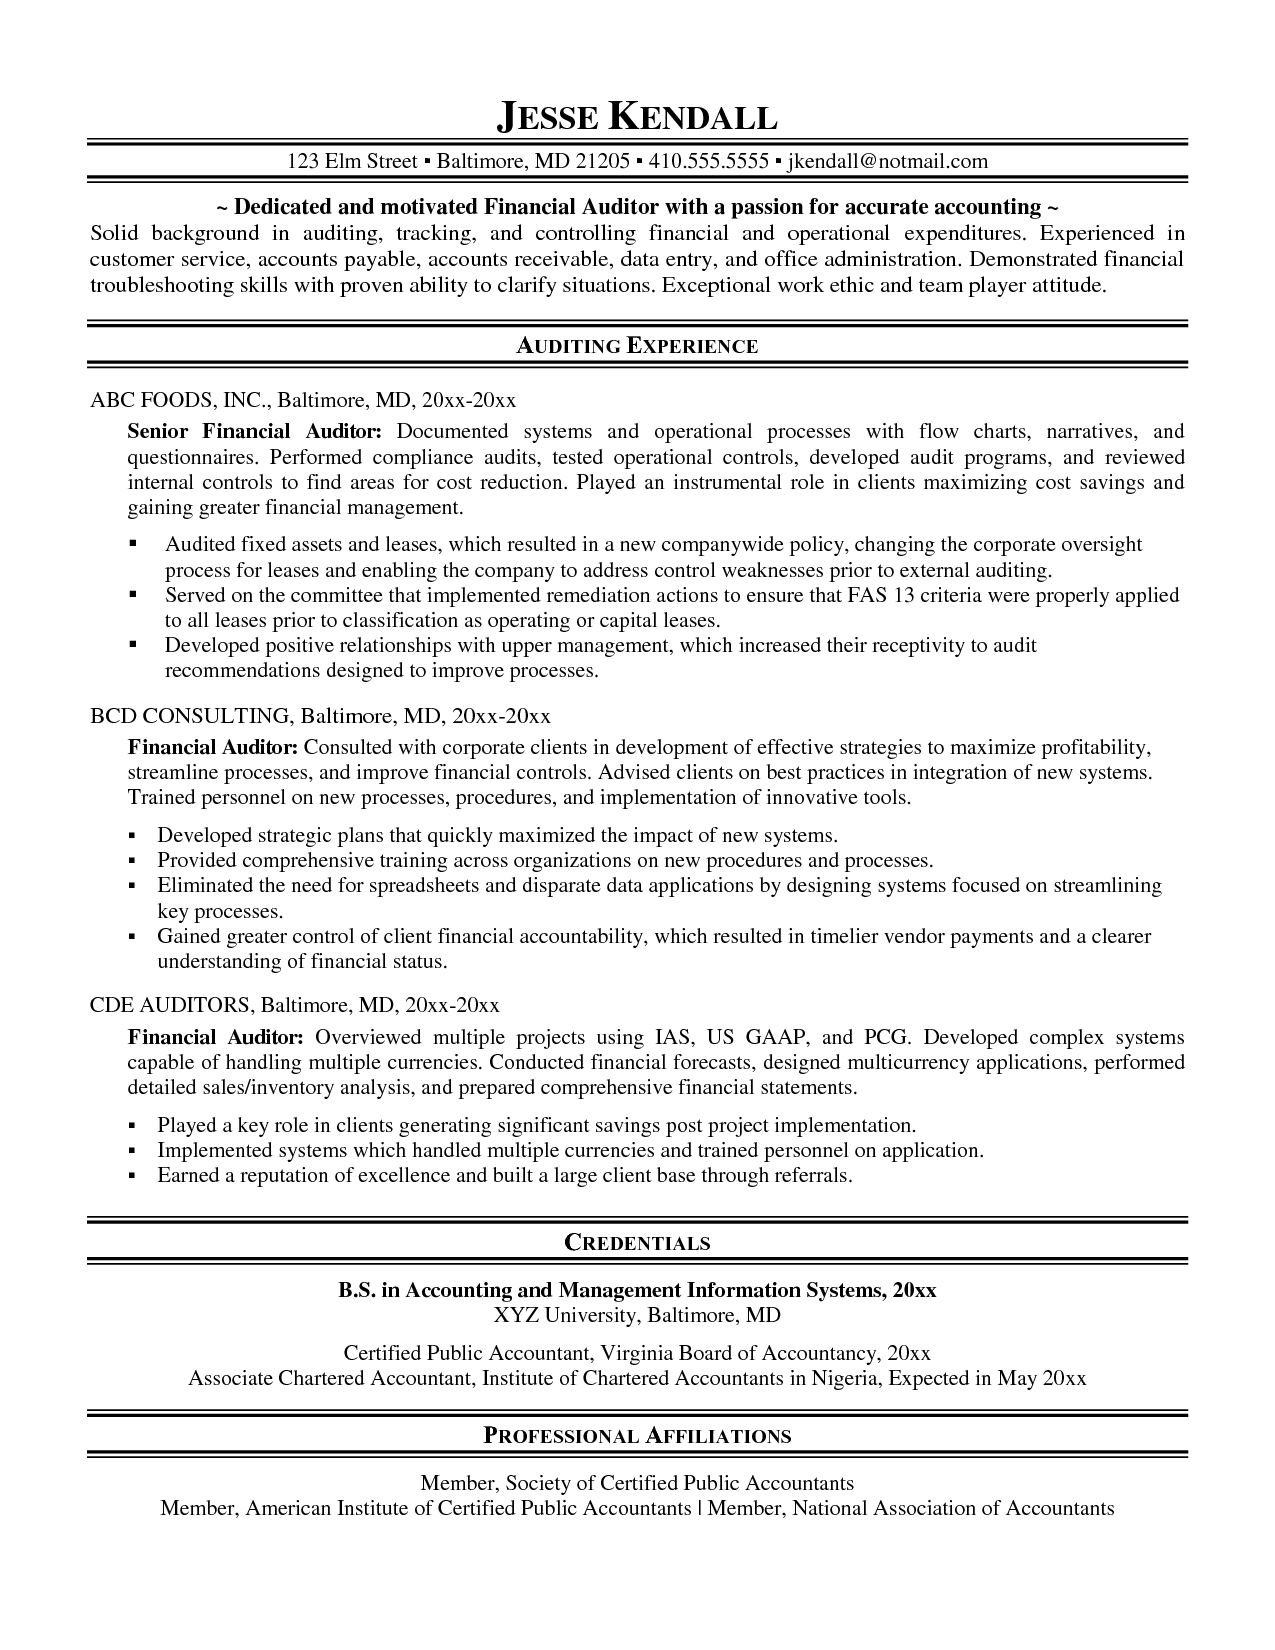 Awesome Collection Of Internal Audit Resume Objectives Examples On Free Resume Samples Resume Objective Examples Accountant Resume